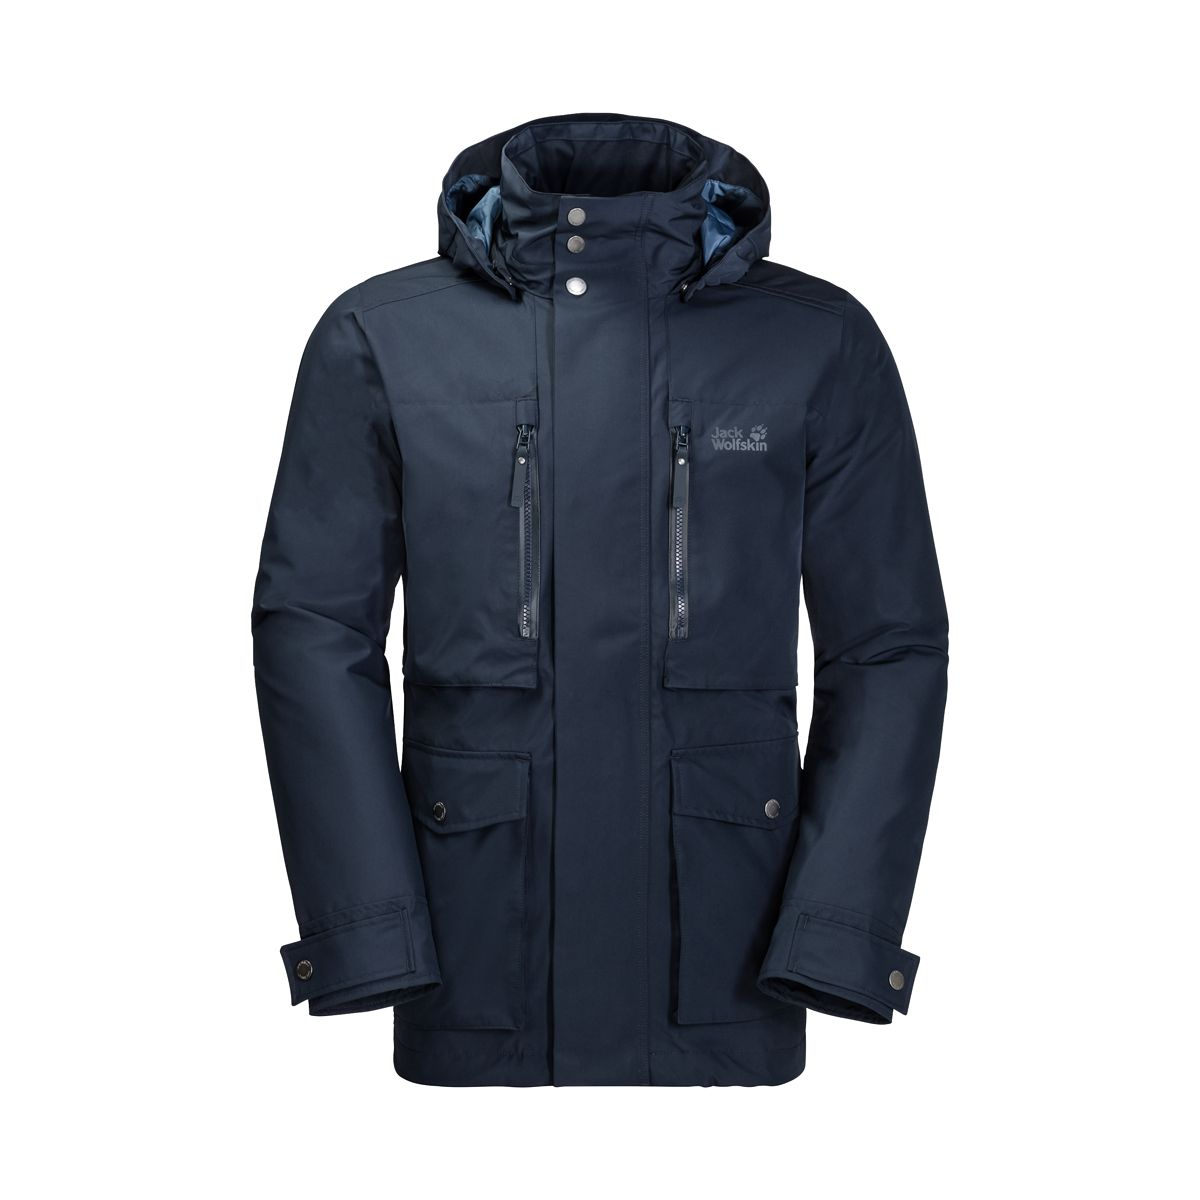 BRIDGEPORT BAY JACKET Herren Winterjacke